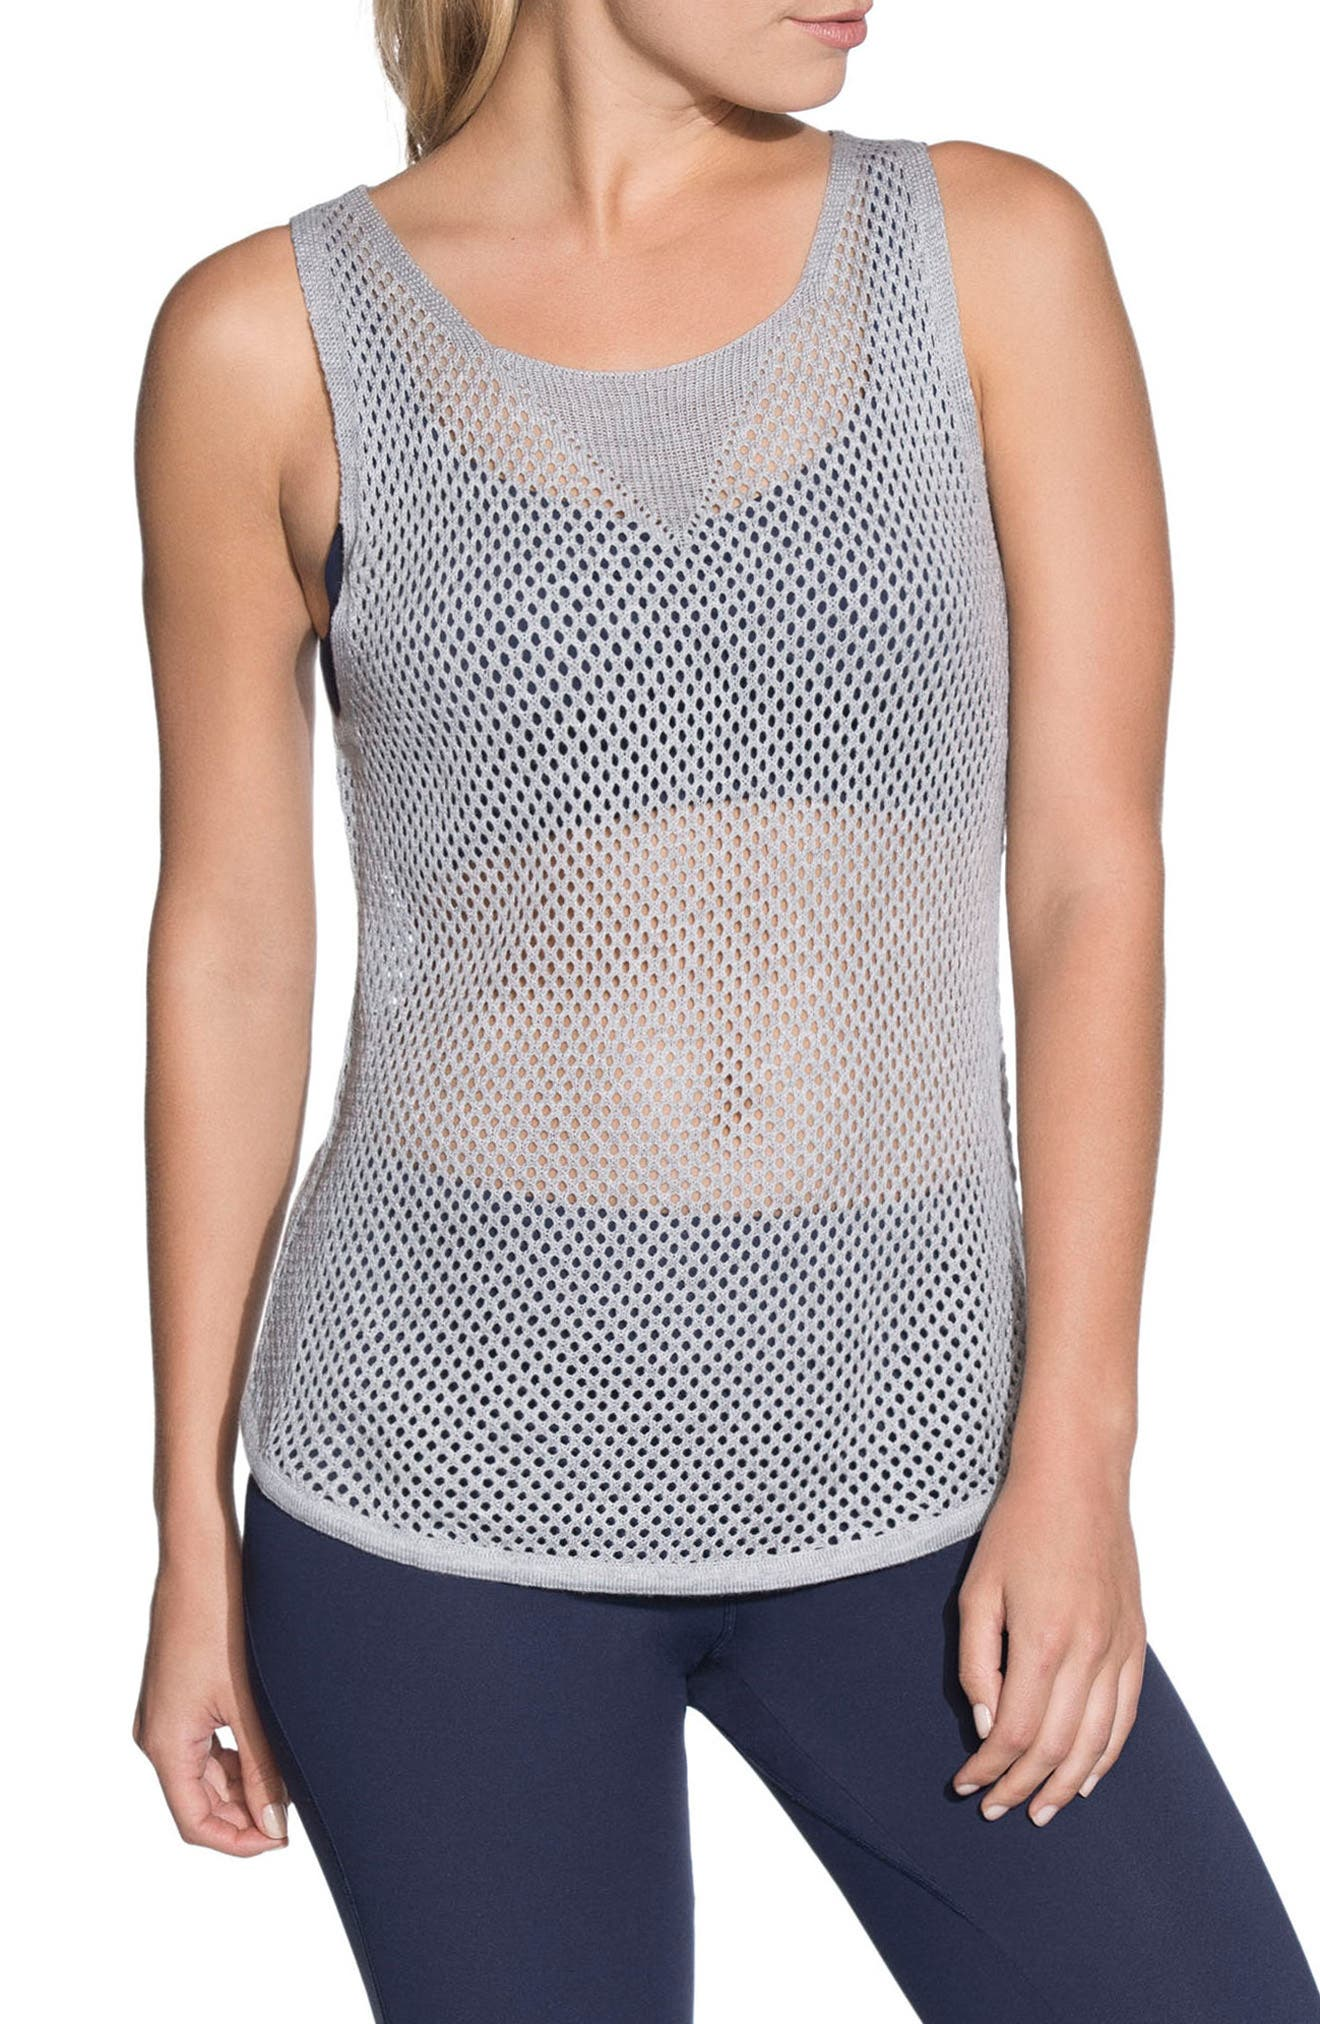 Mystic 1st Layer Mesh Tank,                             Main thumbnail 1, color,                             Light Gray